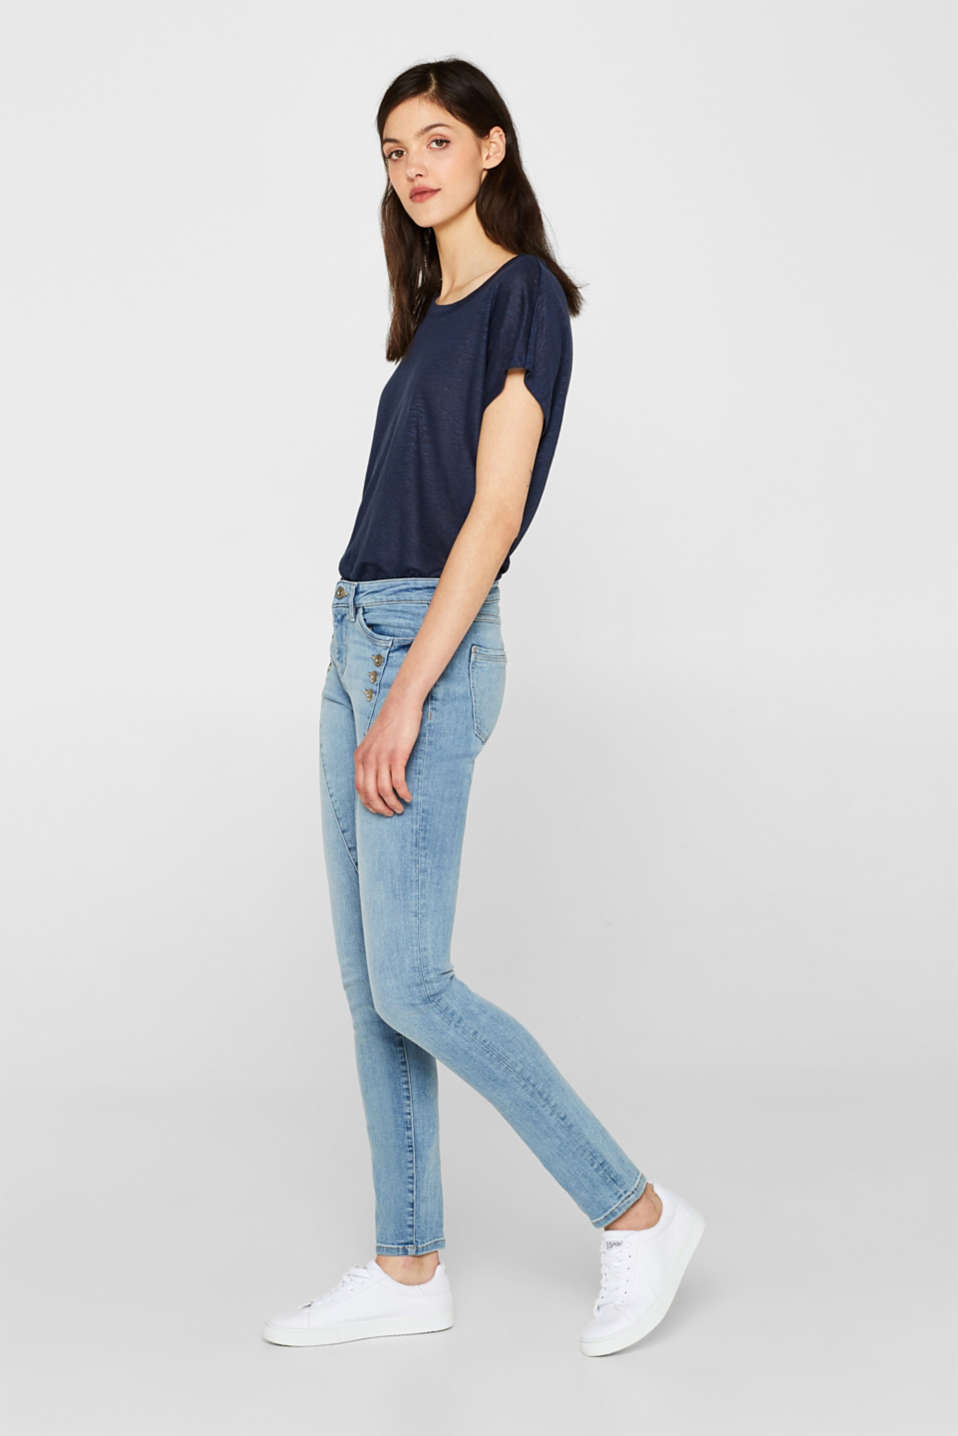 edc - Stretch jeans with decorative button plackets